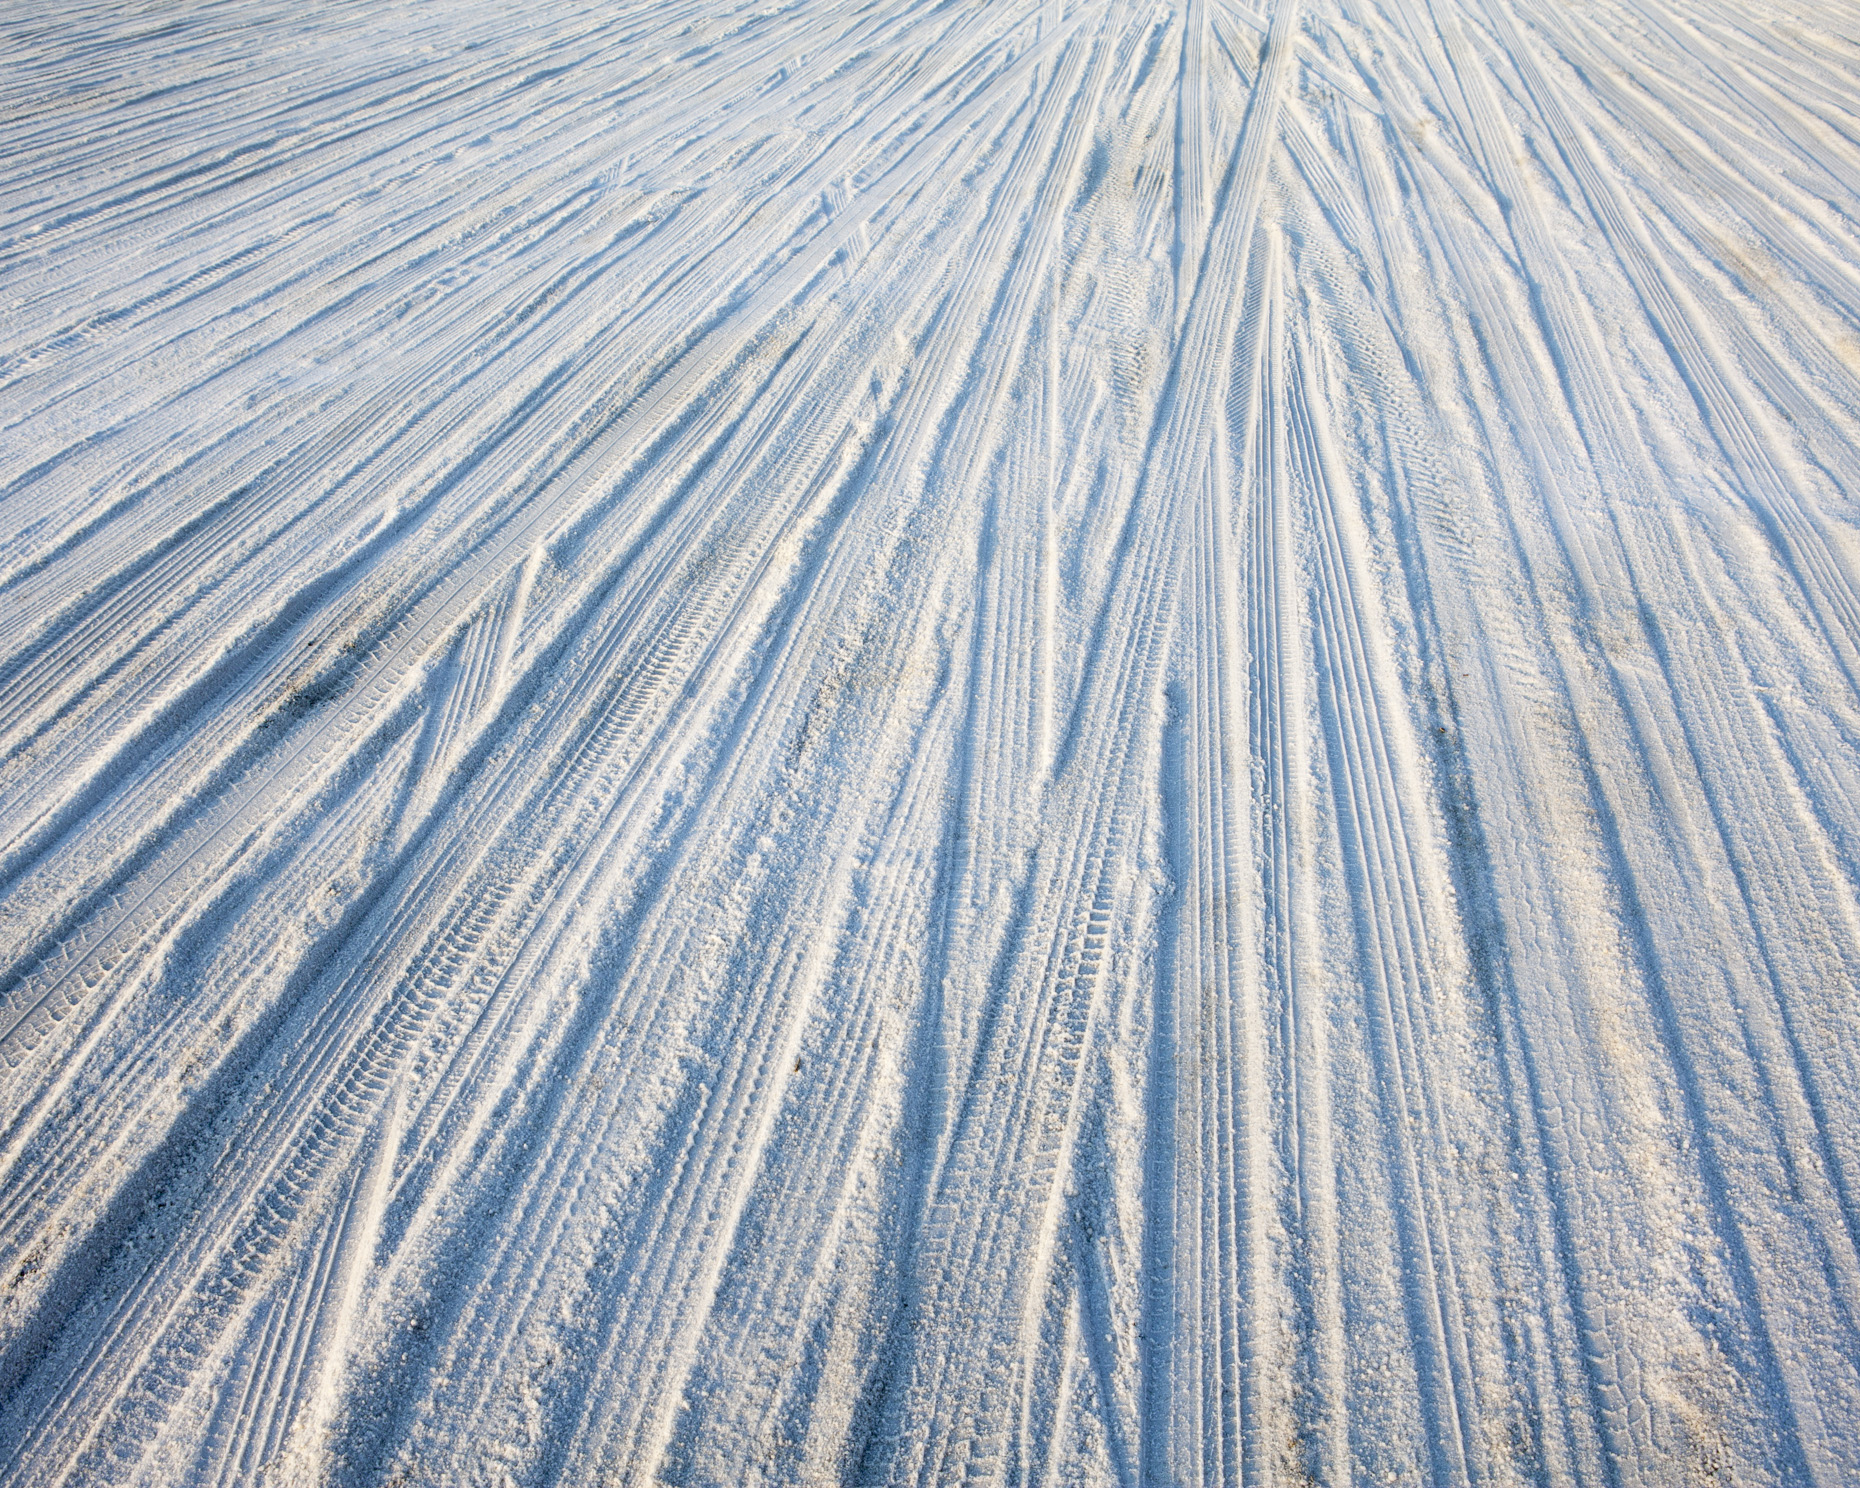 Tire tracks on Bonneville Salt Flats, Speed Week, Utah - Paul Edmondson